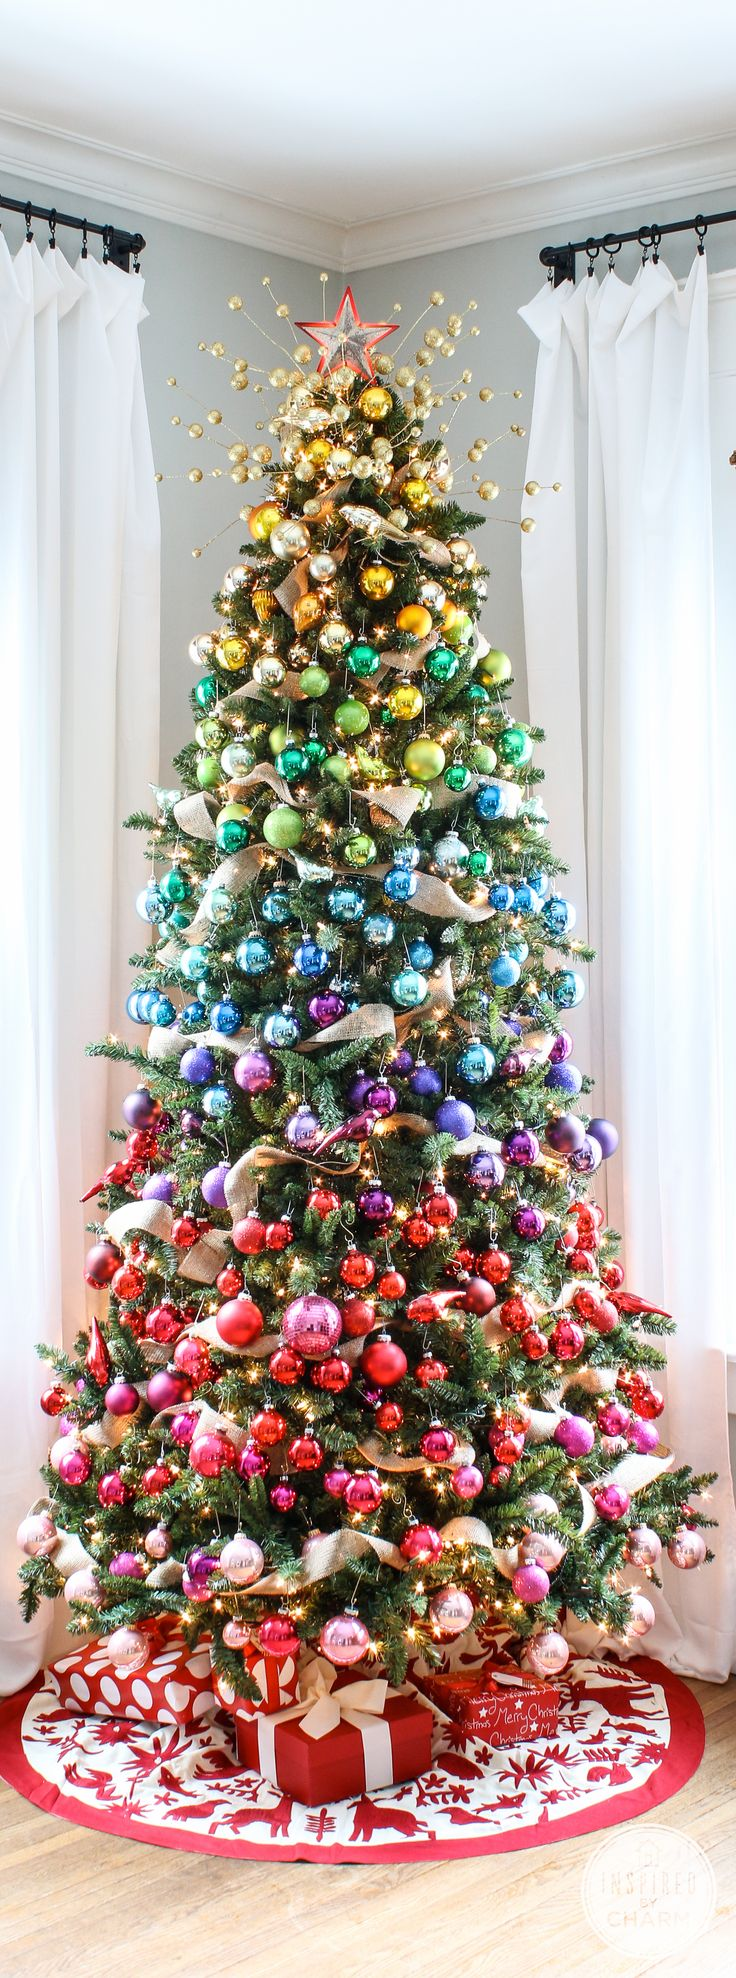 A Colorful Christmas Tree via @inspiredbycharm #gradient #christmas #tree #christmasgoals